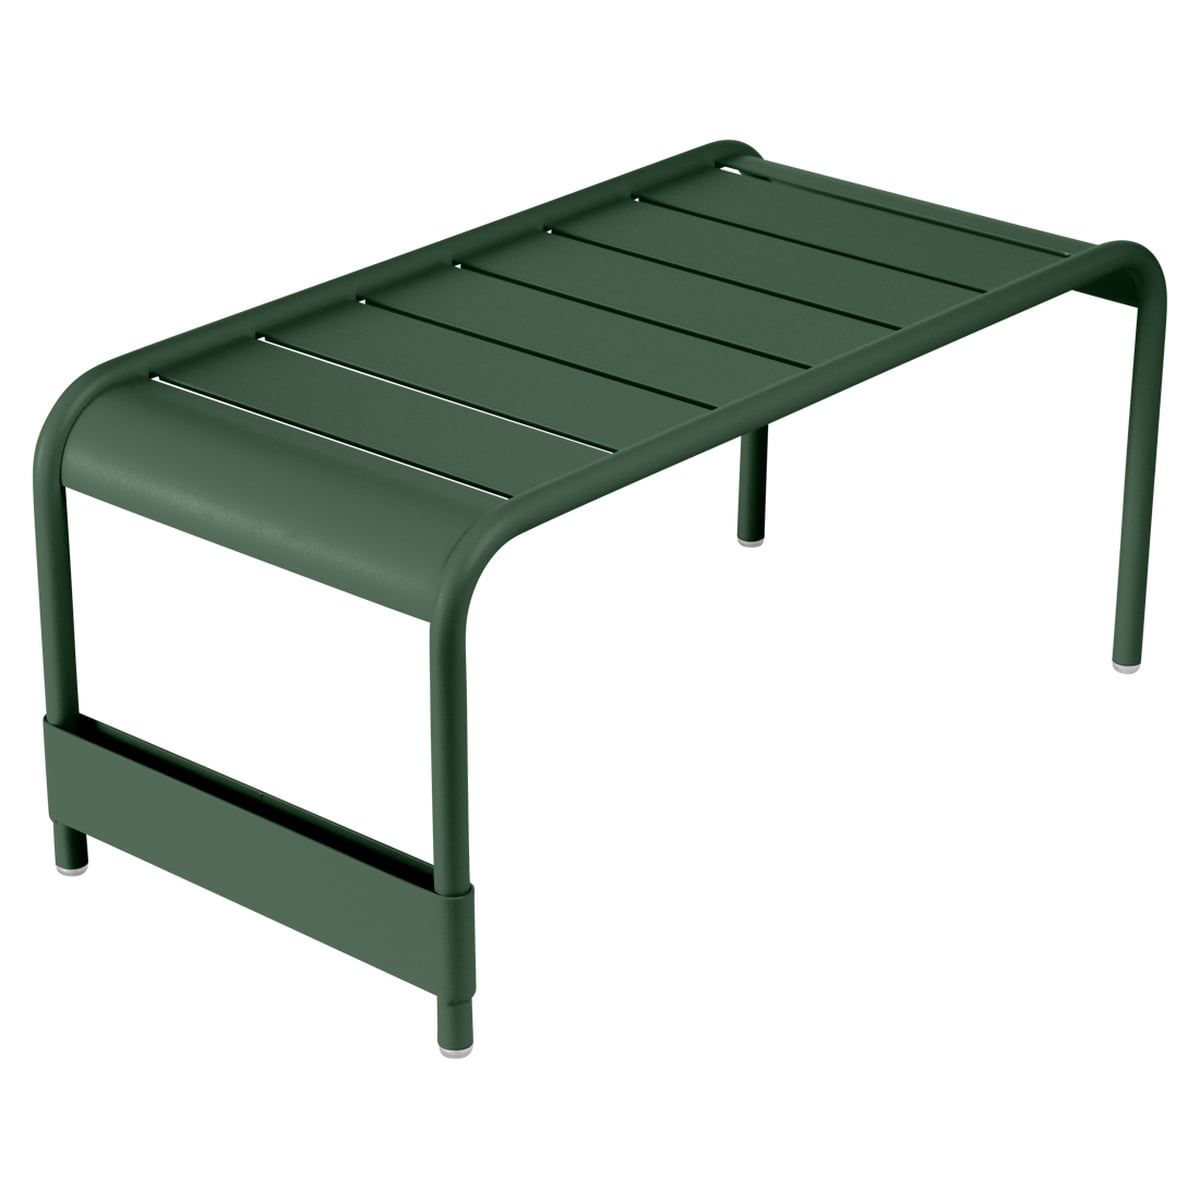 Fermob   Luxembourg Large Low Table / Garden Bench, Cedar Green